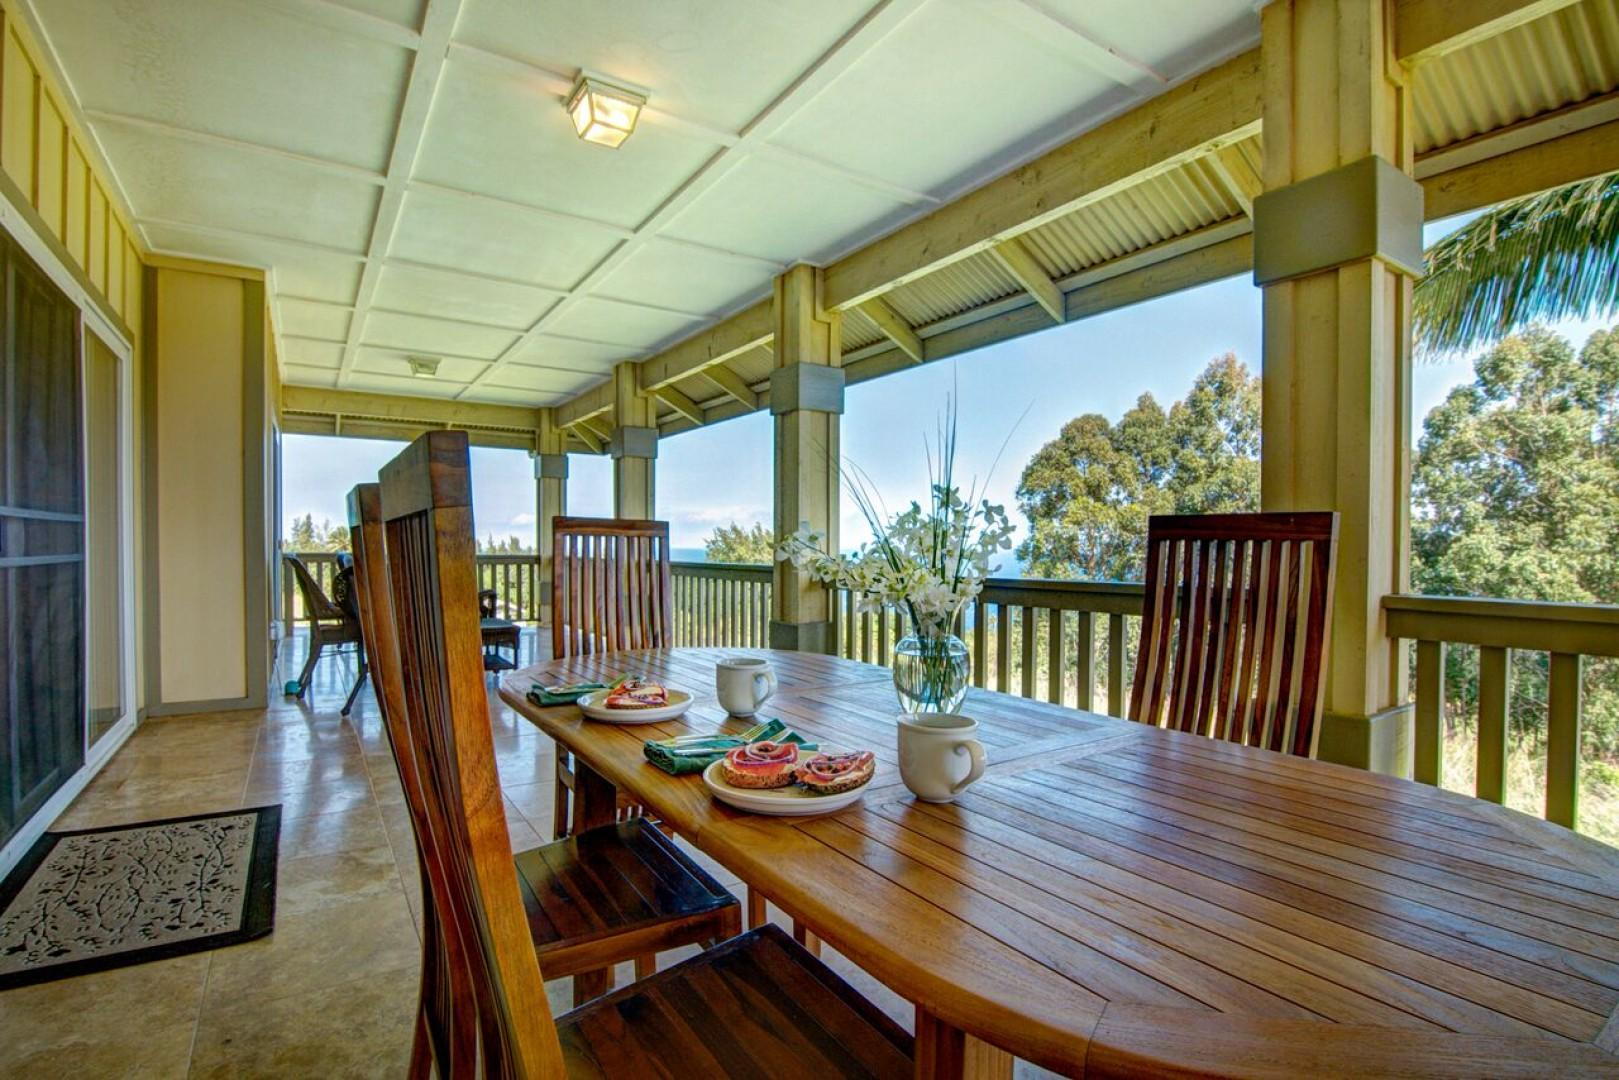 The long back lanai has plenty of room for grilling and eating outside with seating for eight.